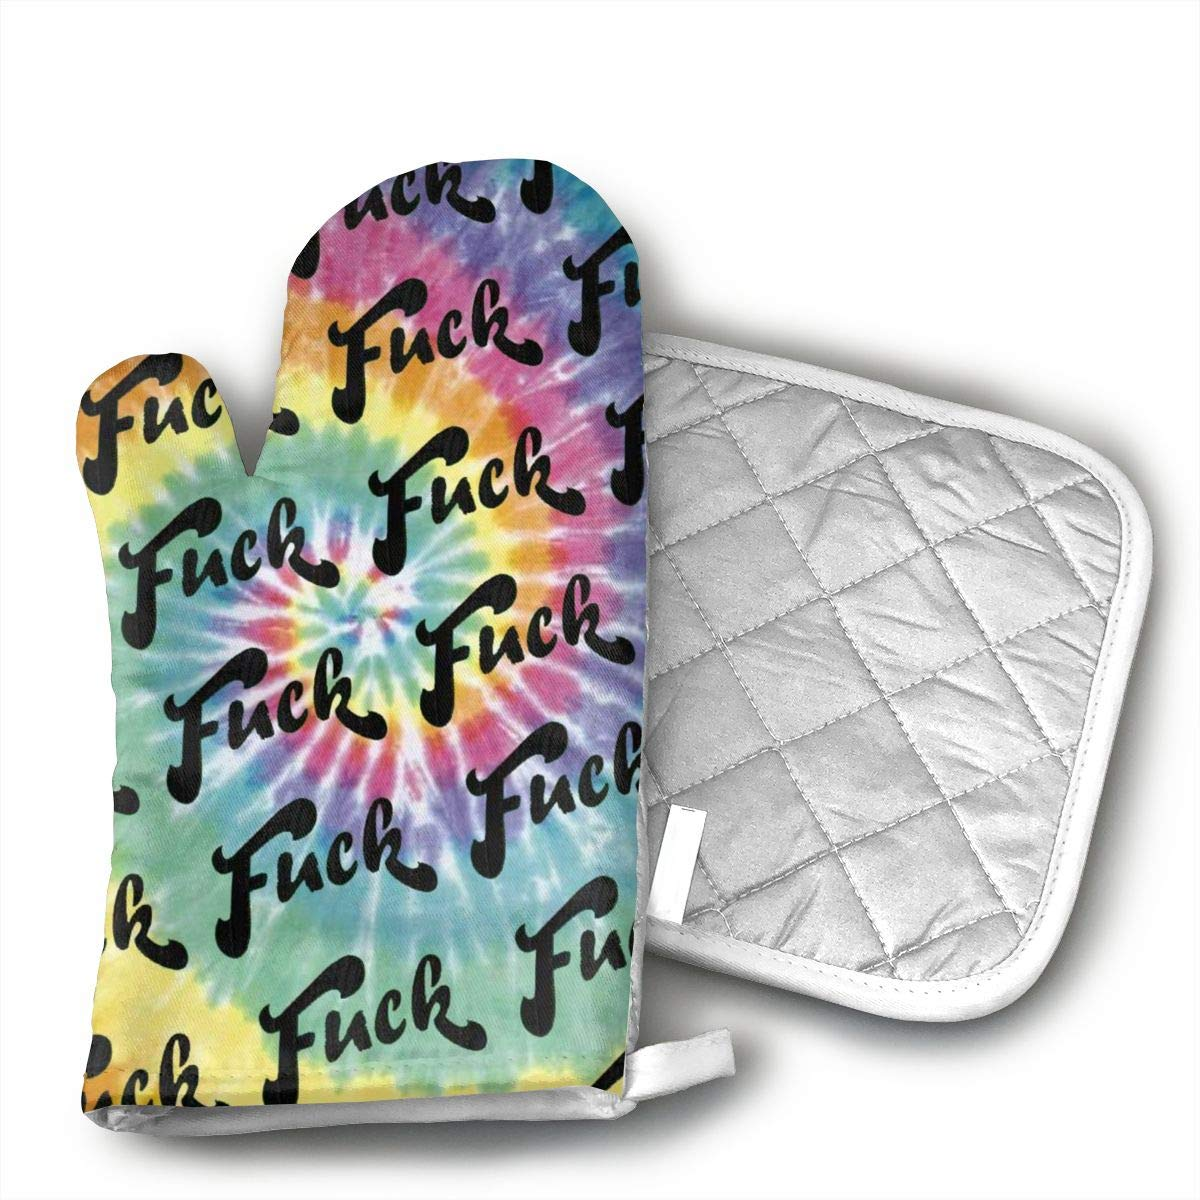 JFNNRUOP Fuck Tie-dye Oven Mitts,with Potholders Oven Gloves,Insulated Quilted Cotton Potholders